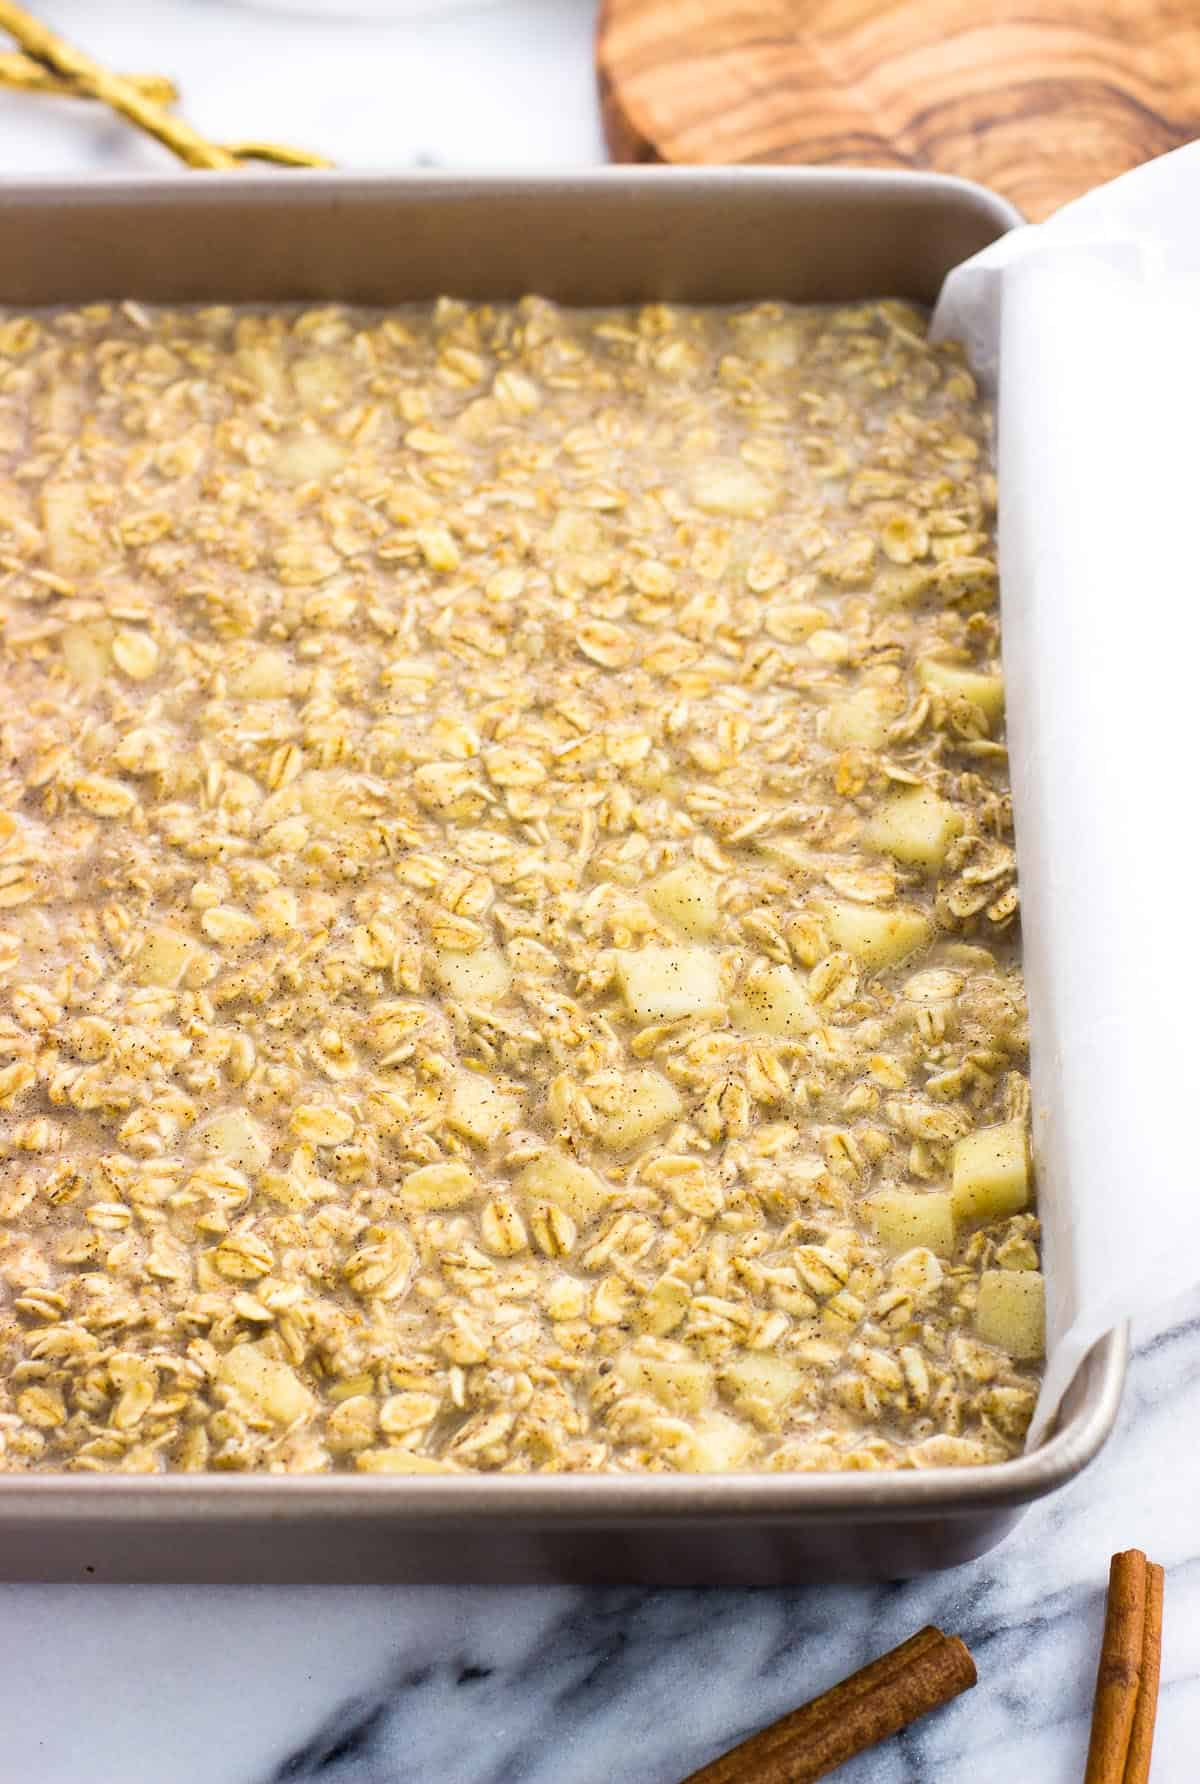 Baked oatmeal mixture poured into a parchment paper-lined square baking dish.